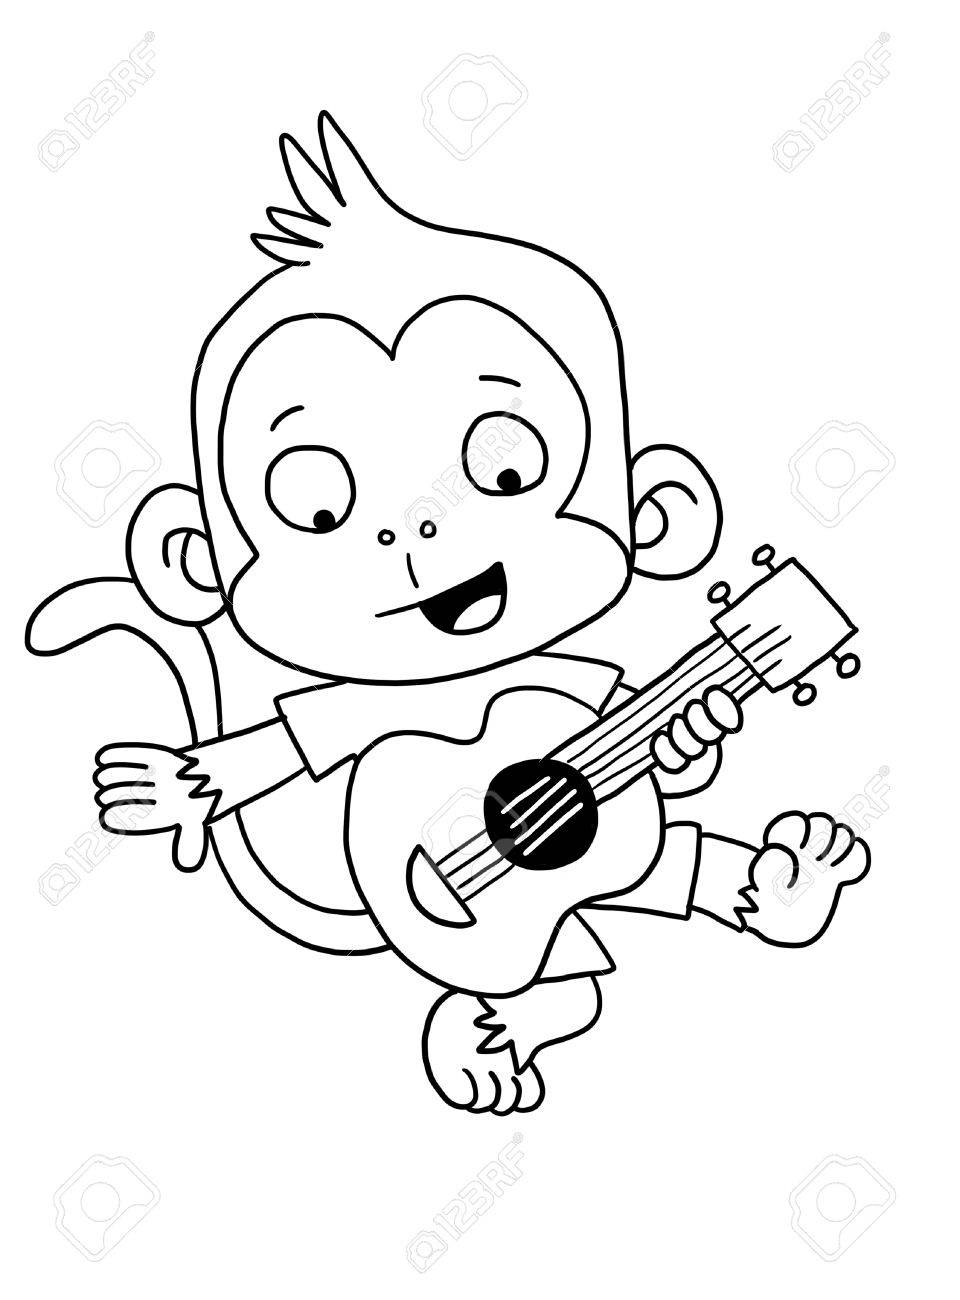 Cute Guitar Monkey - Coloring Page Stock Photo, Picture And Royalty ...